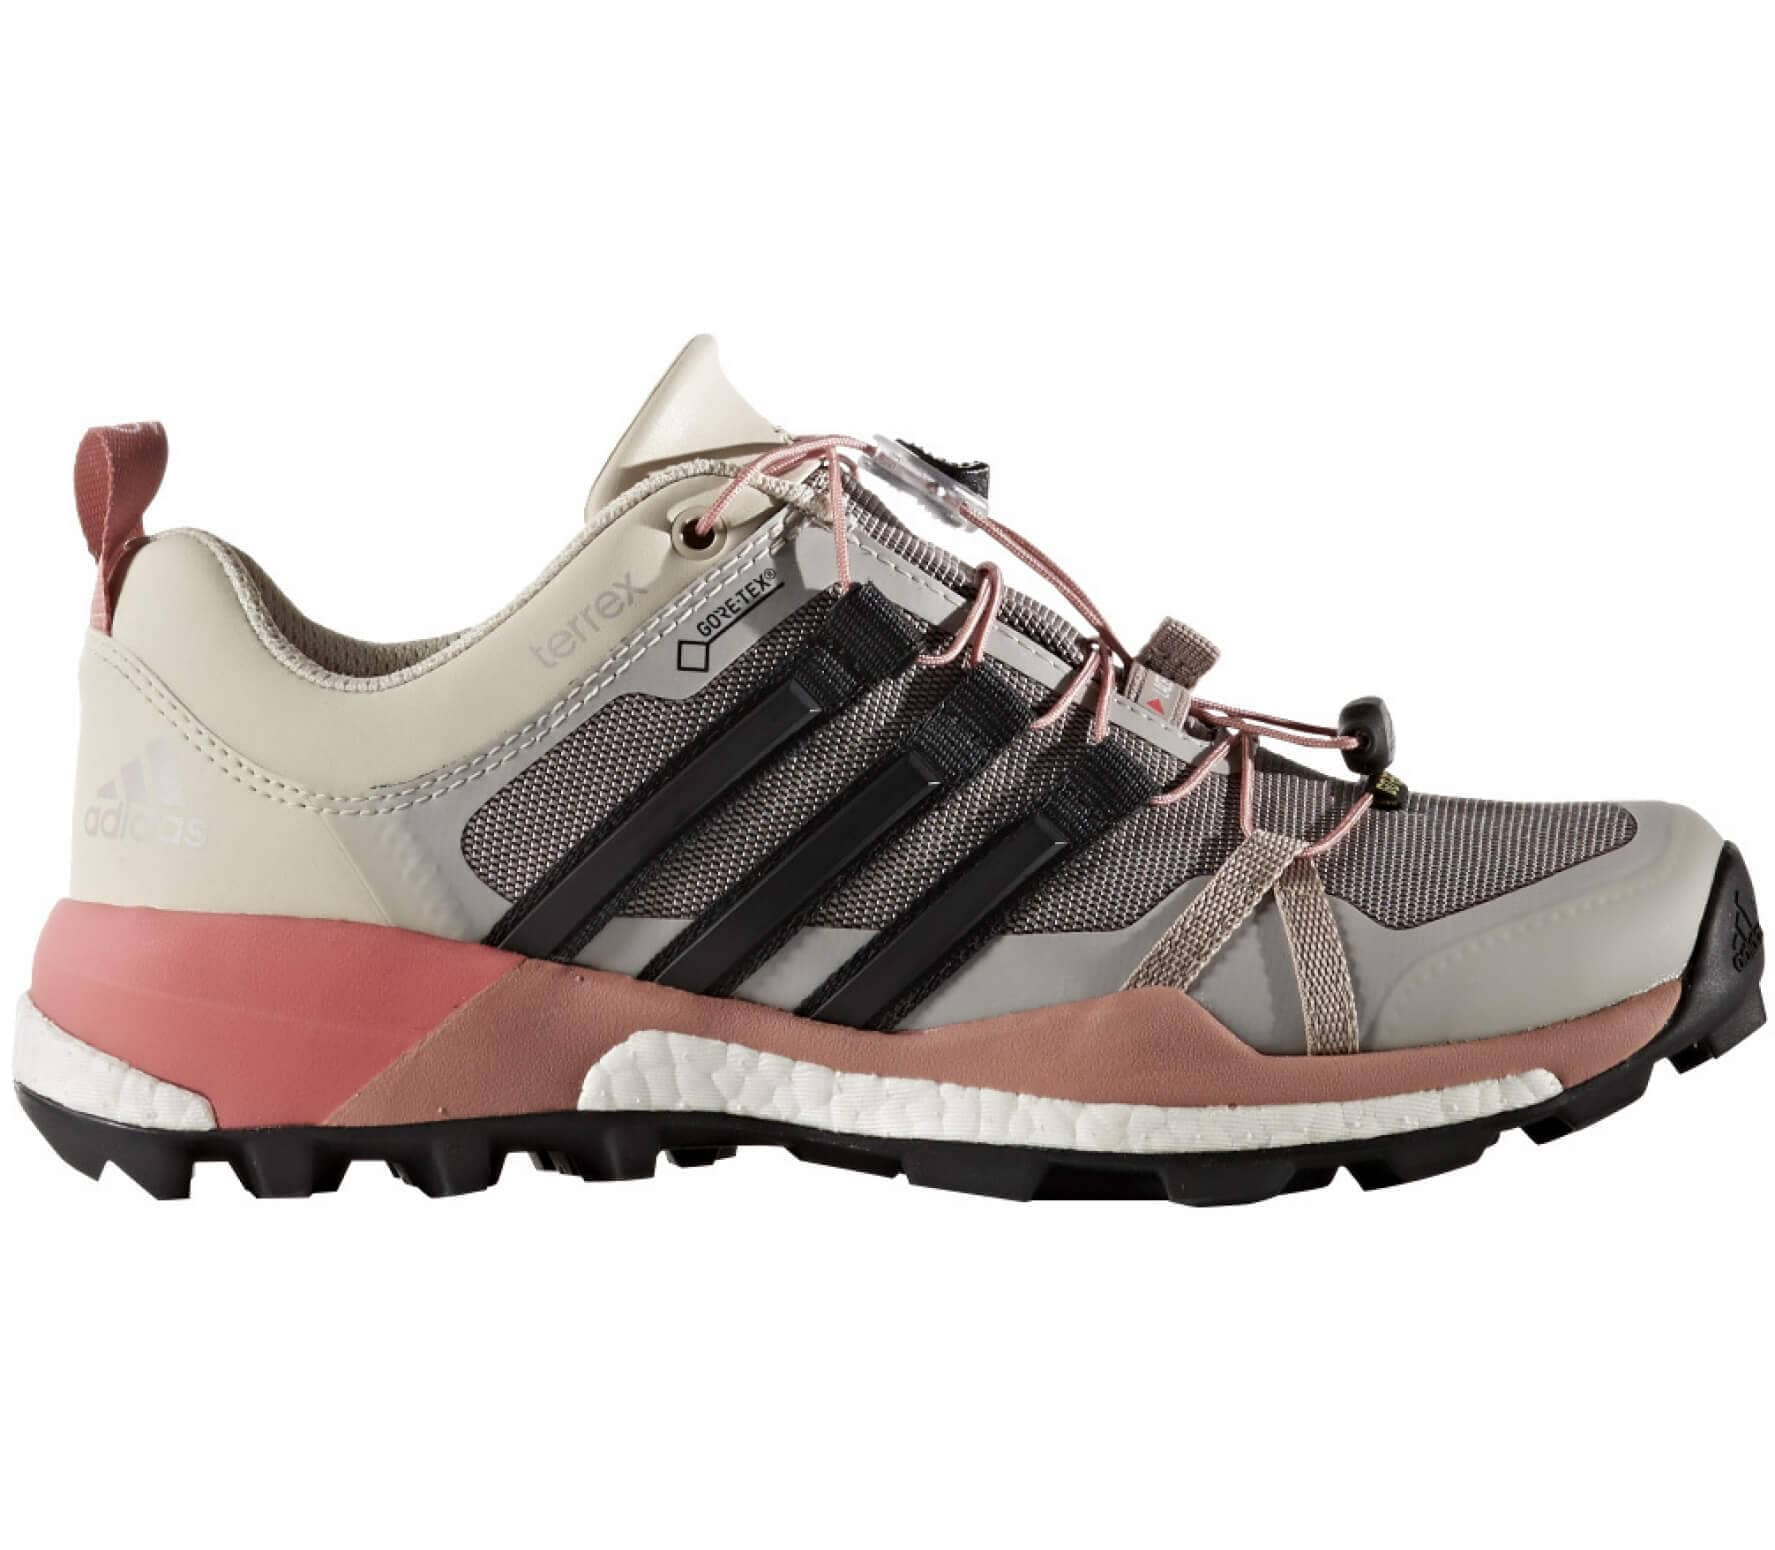 683152f0425a Adidas - Terrex Skychaser GTX women s hiking shoes (grey pink) - buy ...